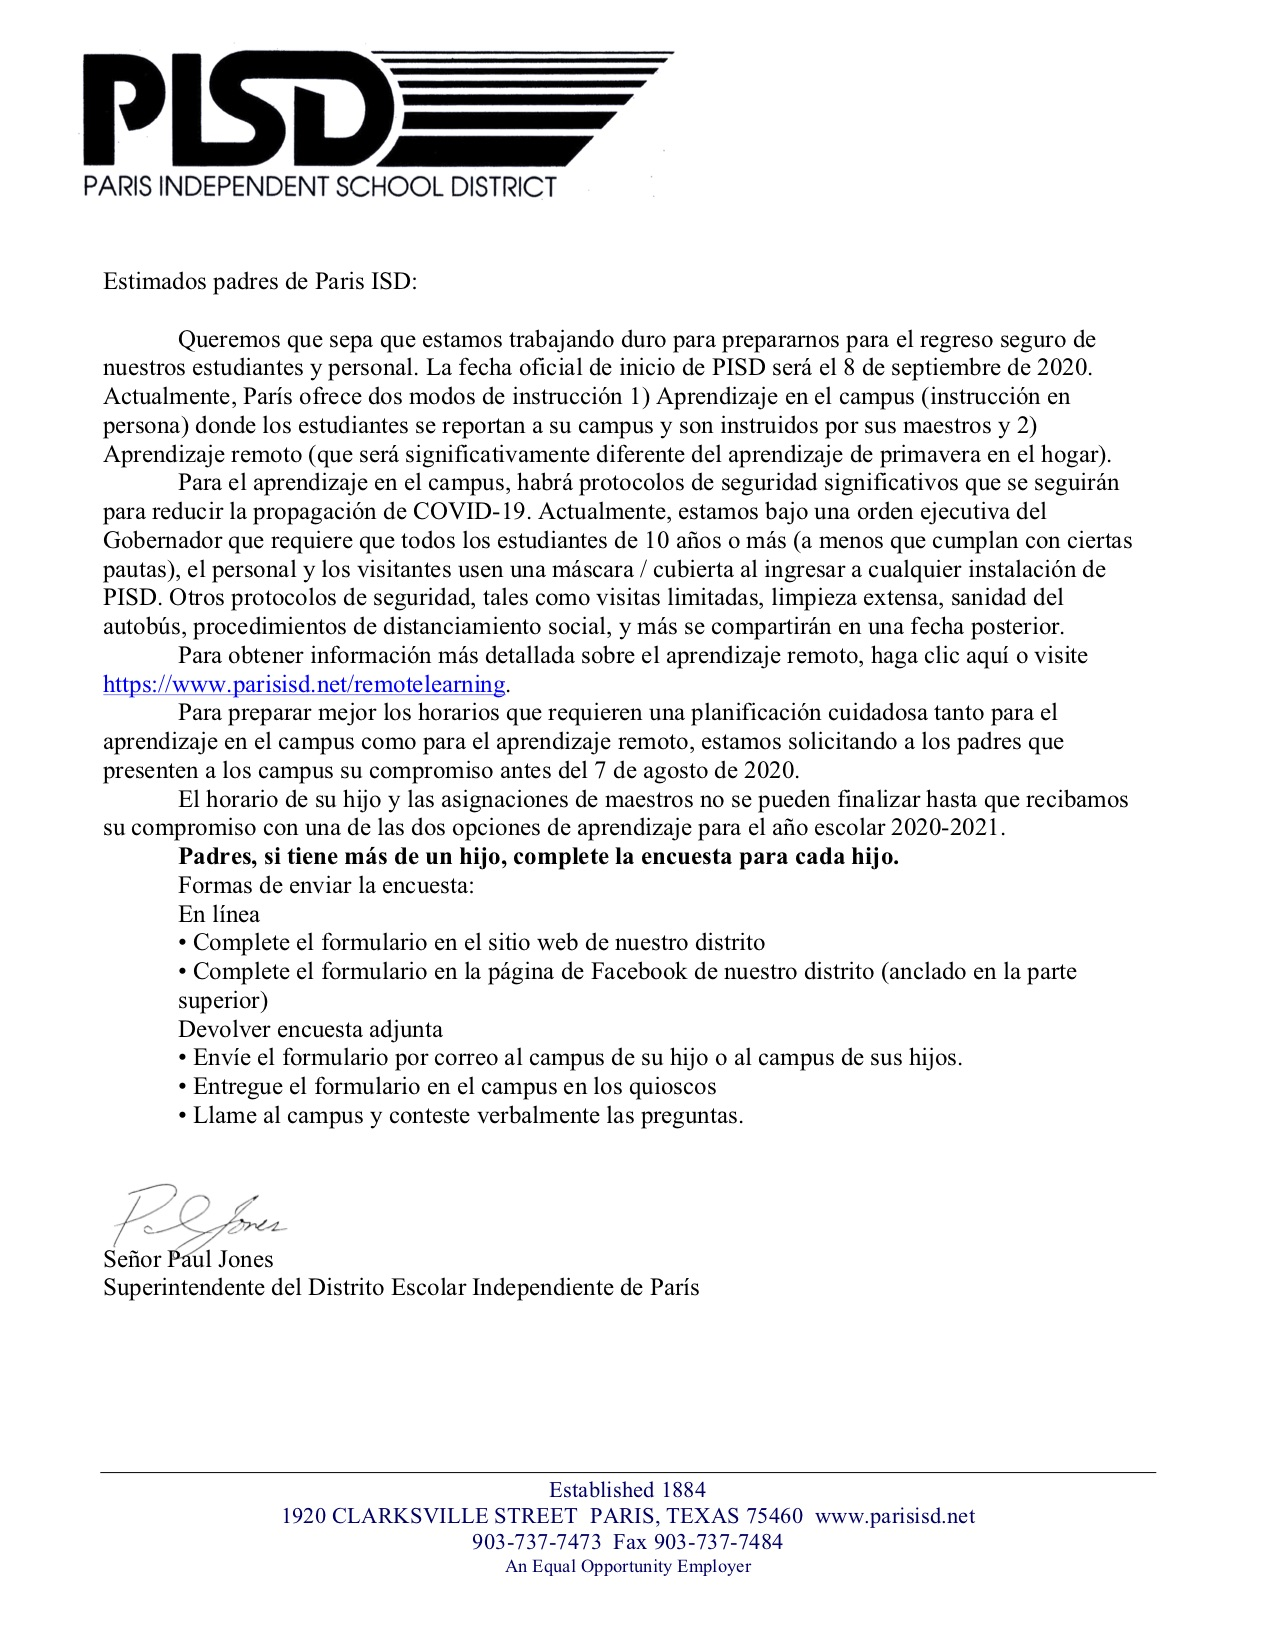 Welcome Letter Spanish